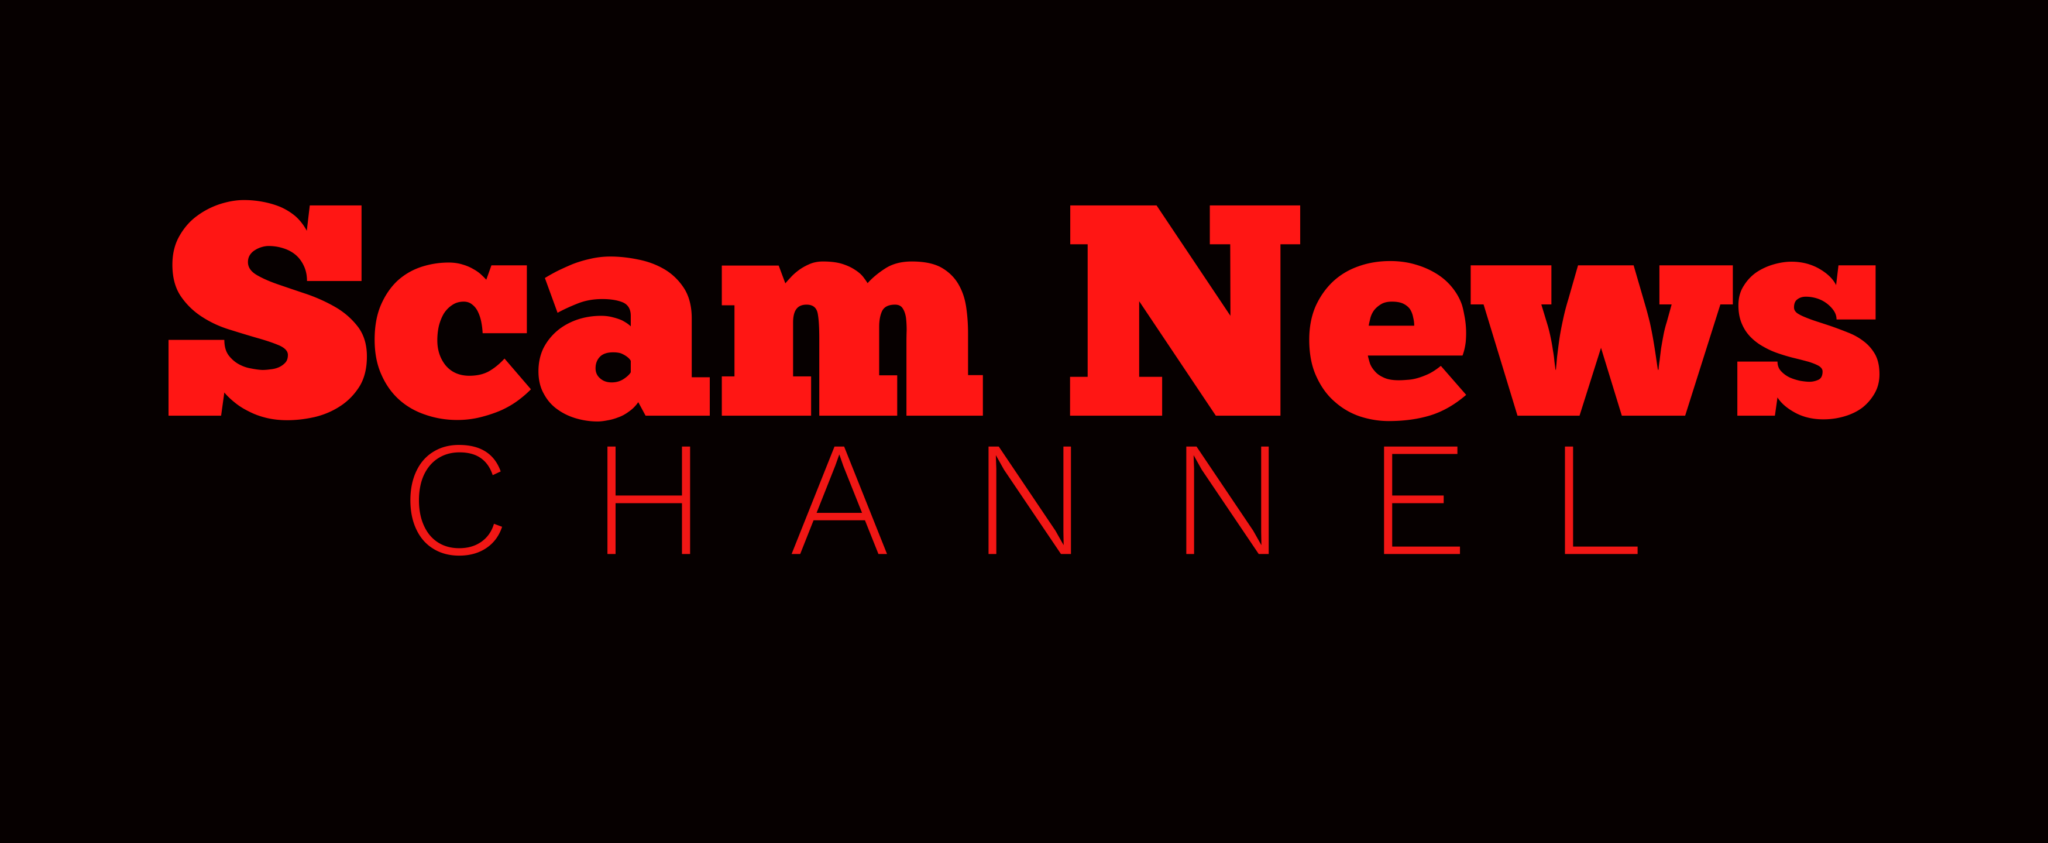 Scam News Channel